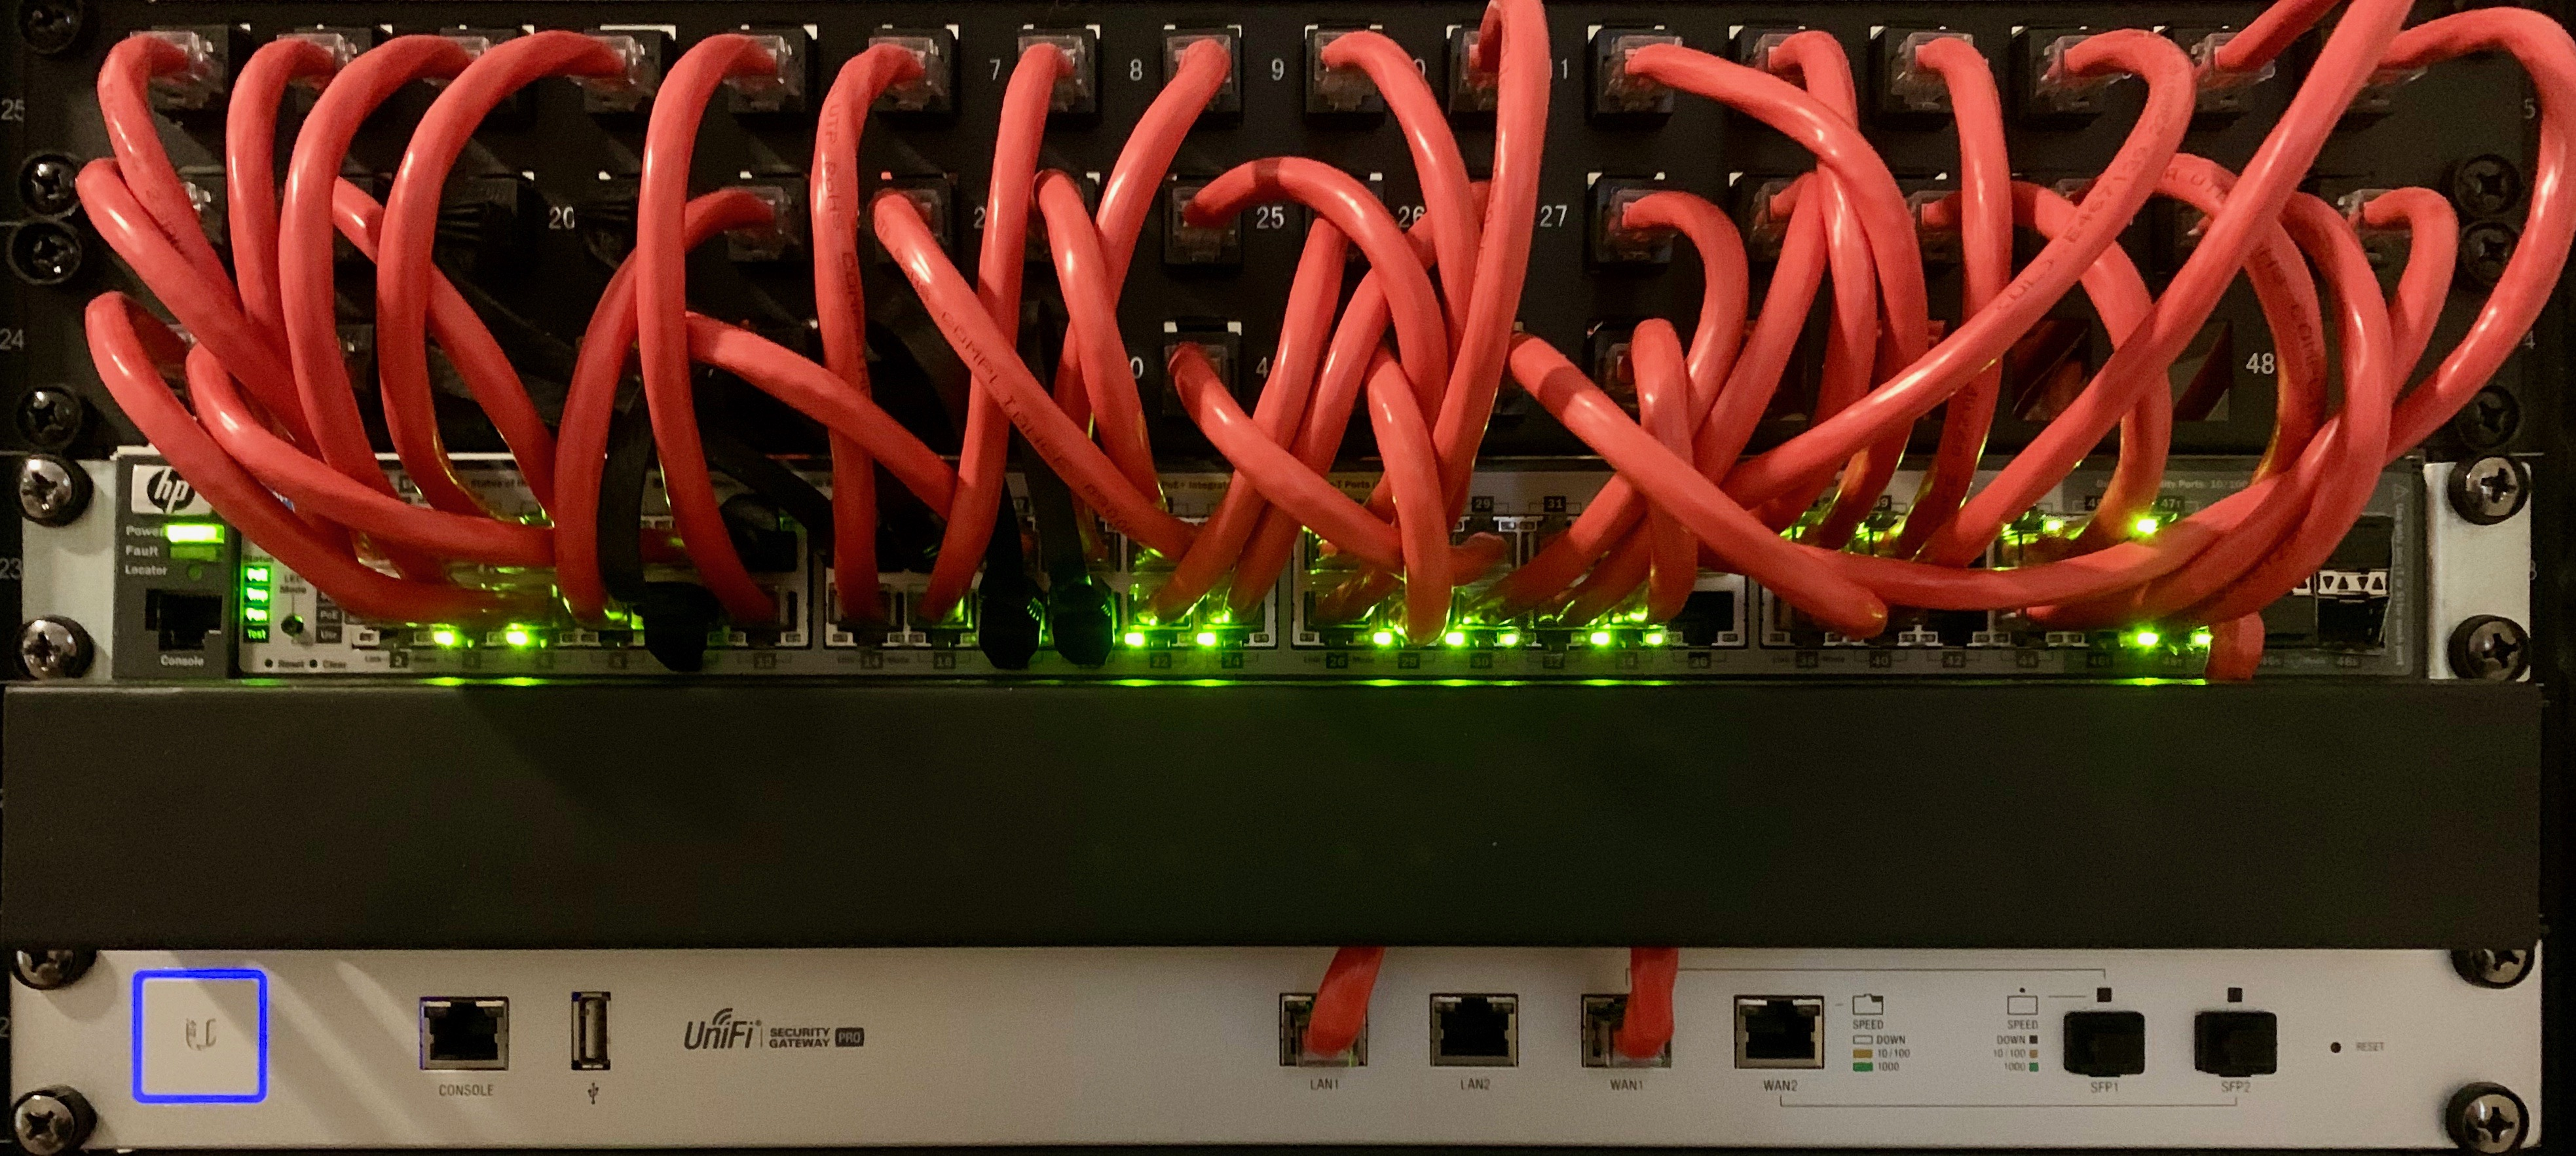 networking equipment mounted in rack